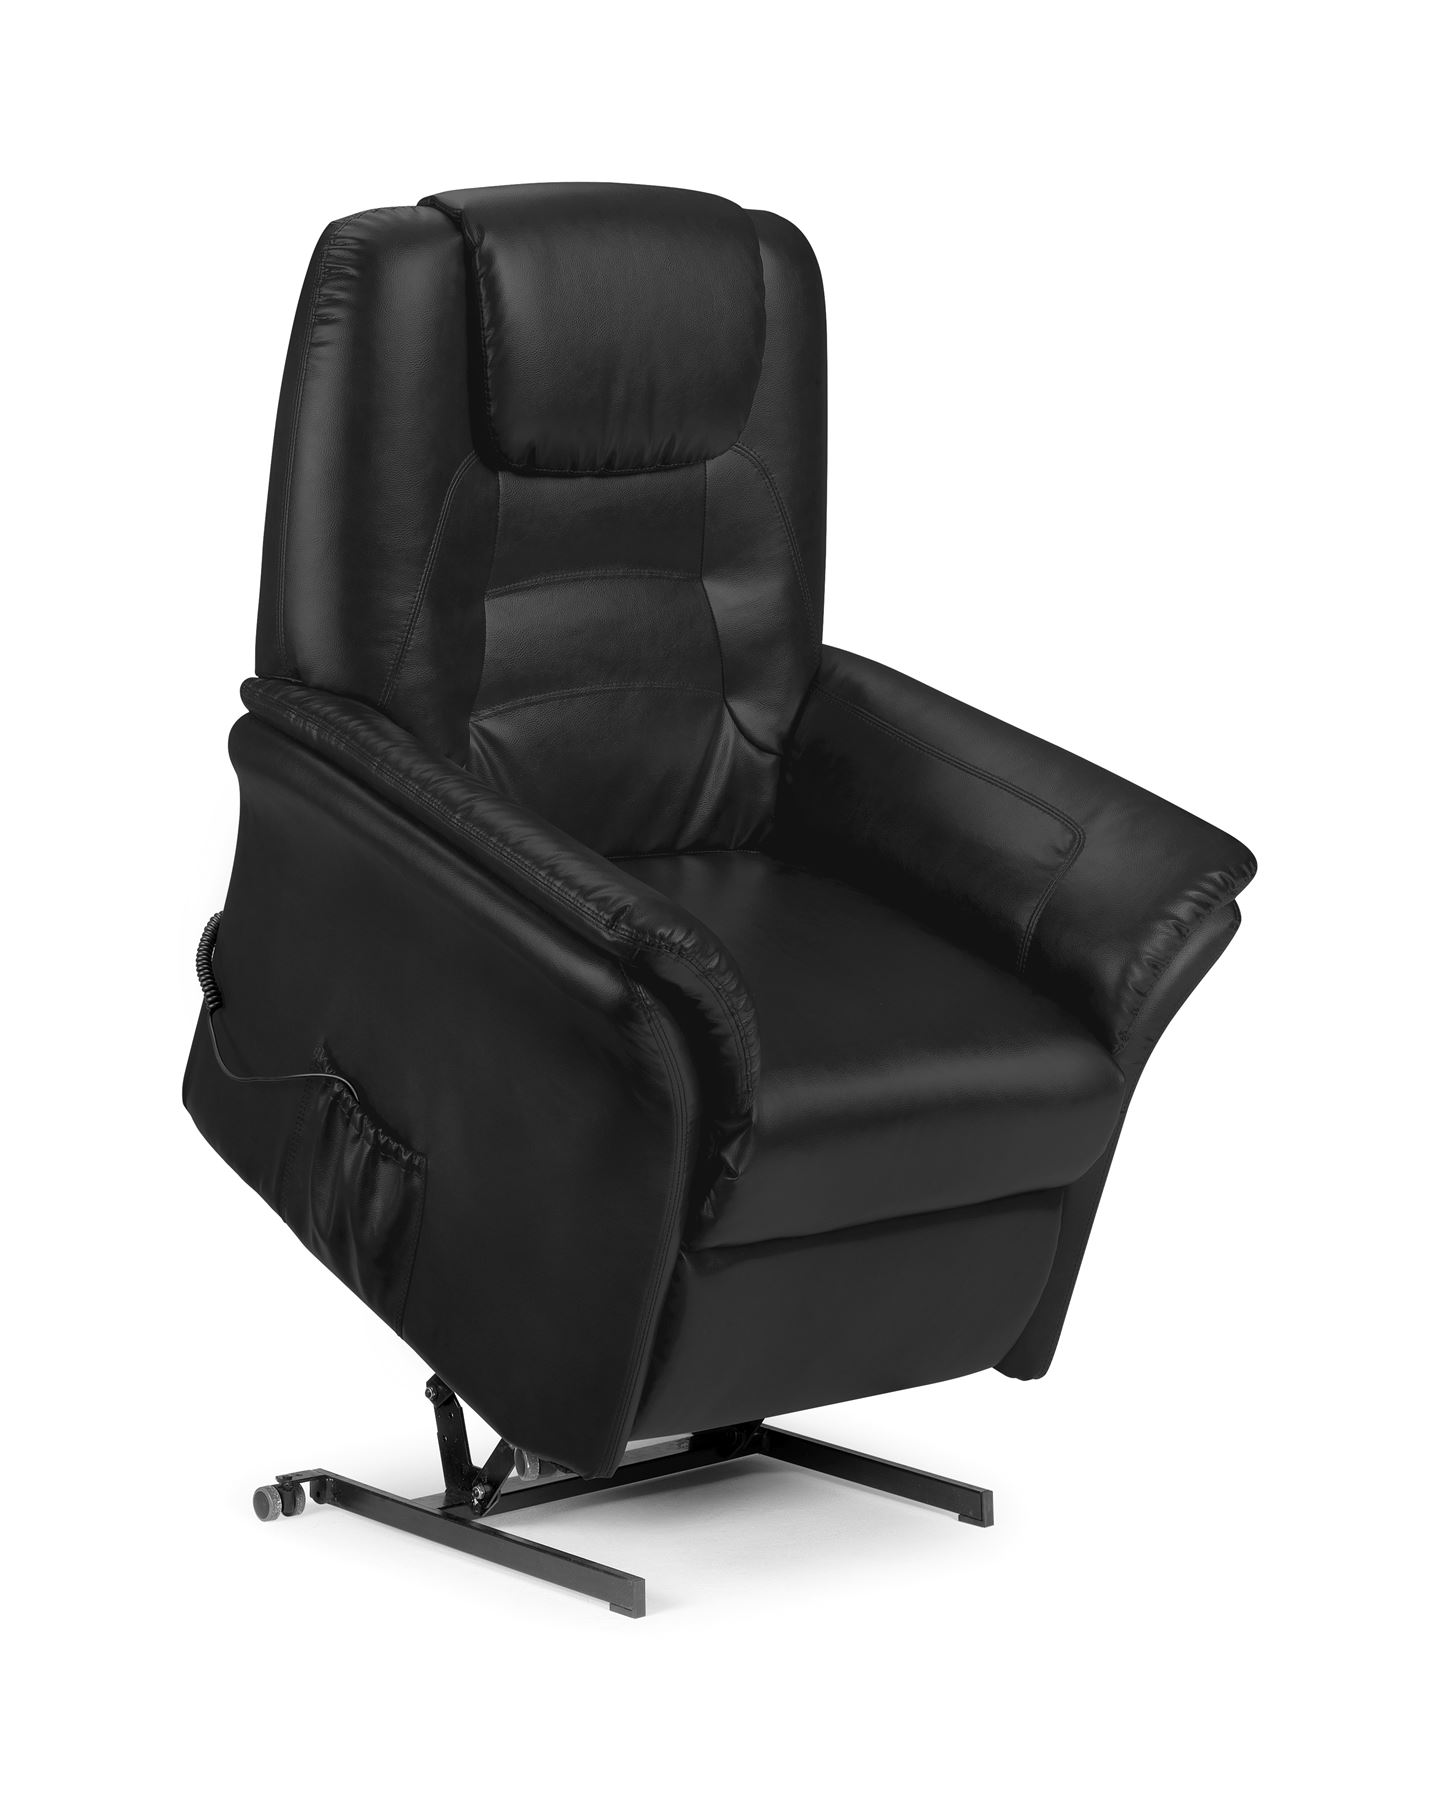 Julian Bowen Riva Electric rise recliner Chair Black Faux Leather